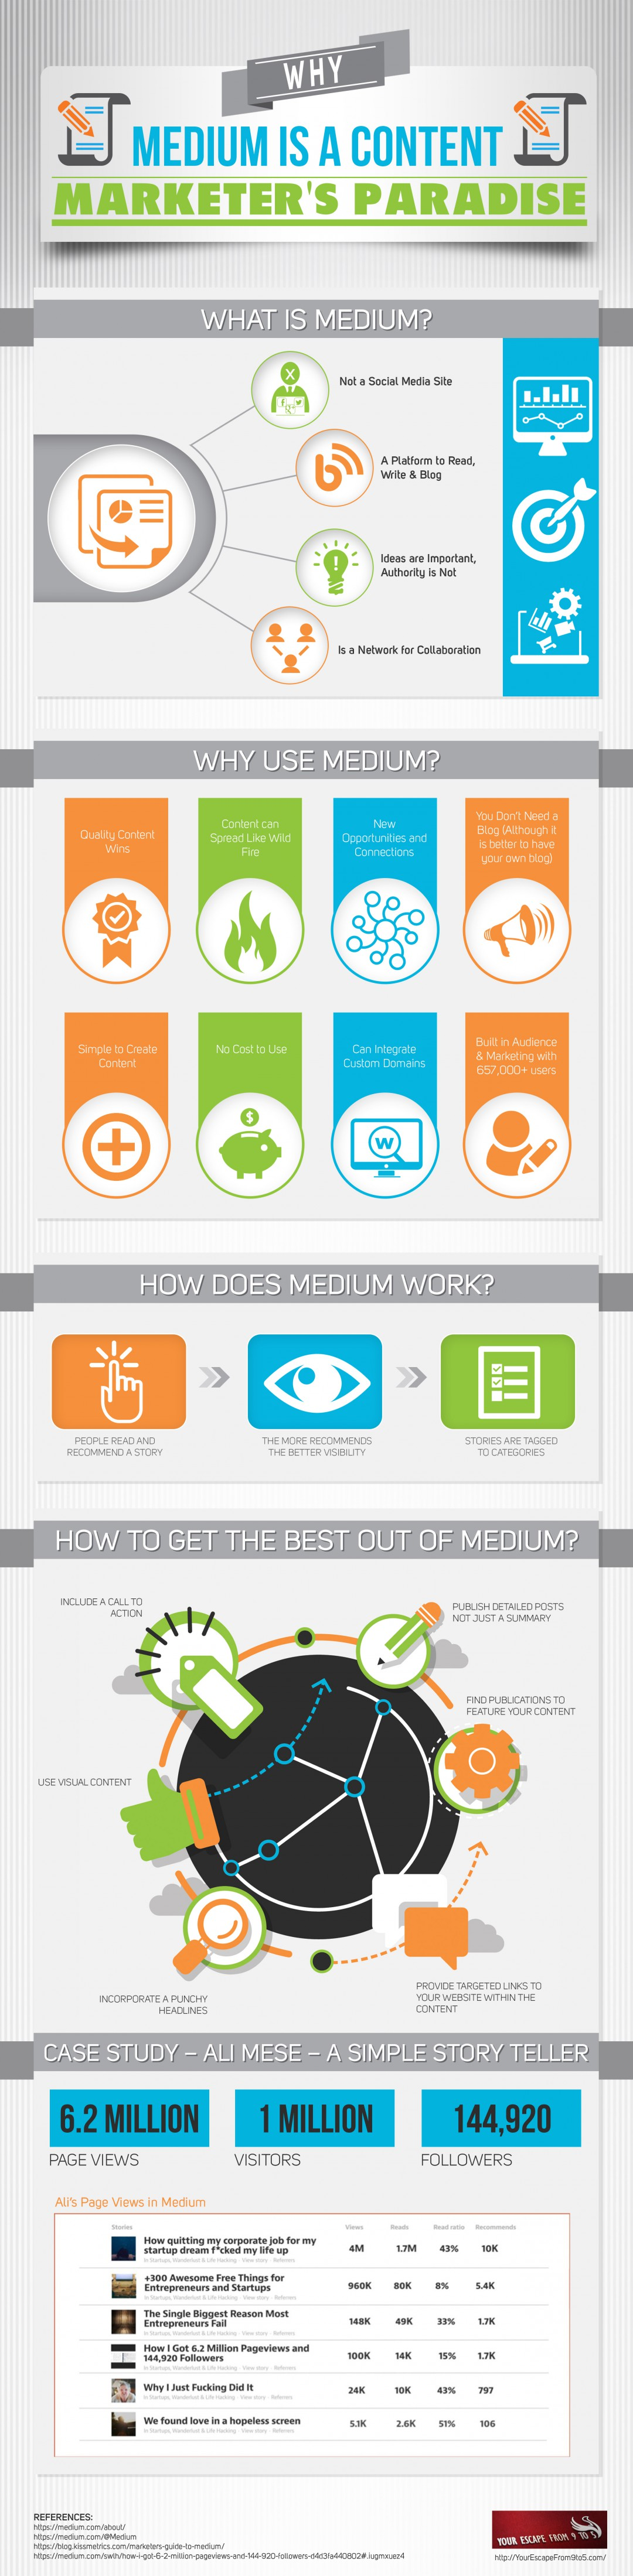 wersm-why-medium-is-a-content-marketers-paradise-img